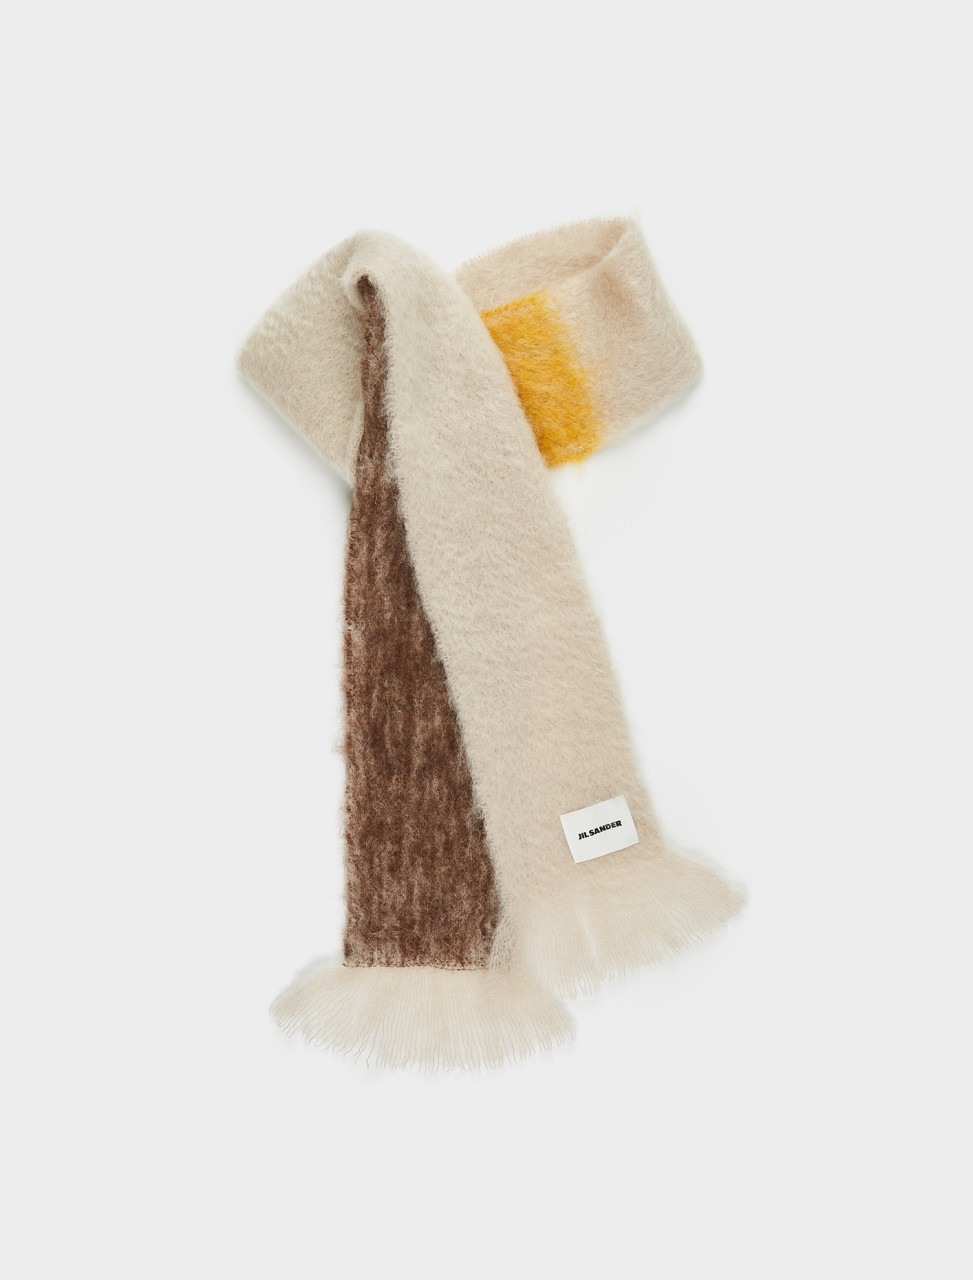 130-JSPR902017-WR199717-968 Jil Sander Mohair Scarf in Beige Brown Yellow